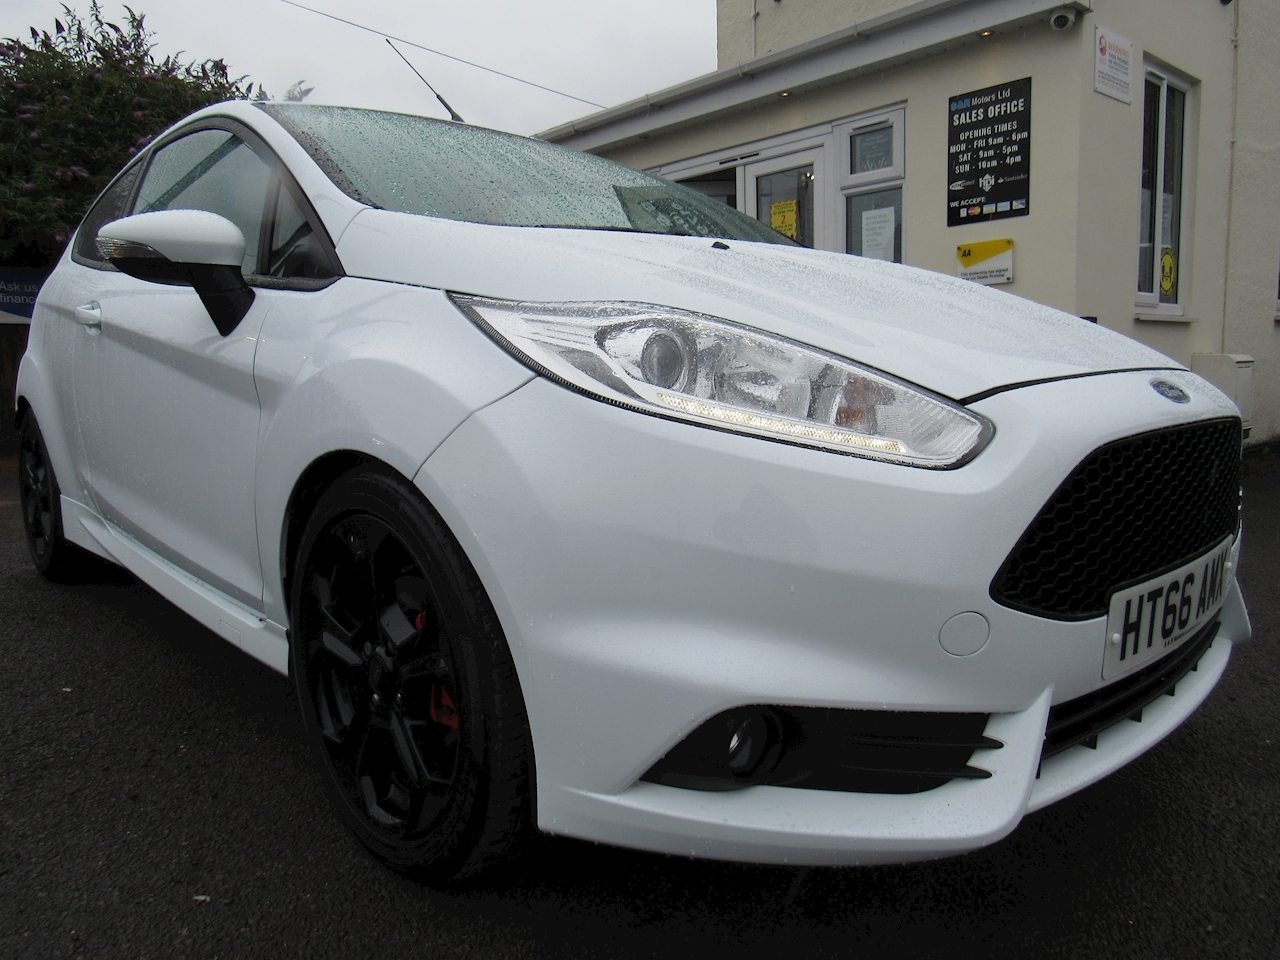 Ford Fiesta St-2 Hatchback 1.6 Manual Petrol